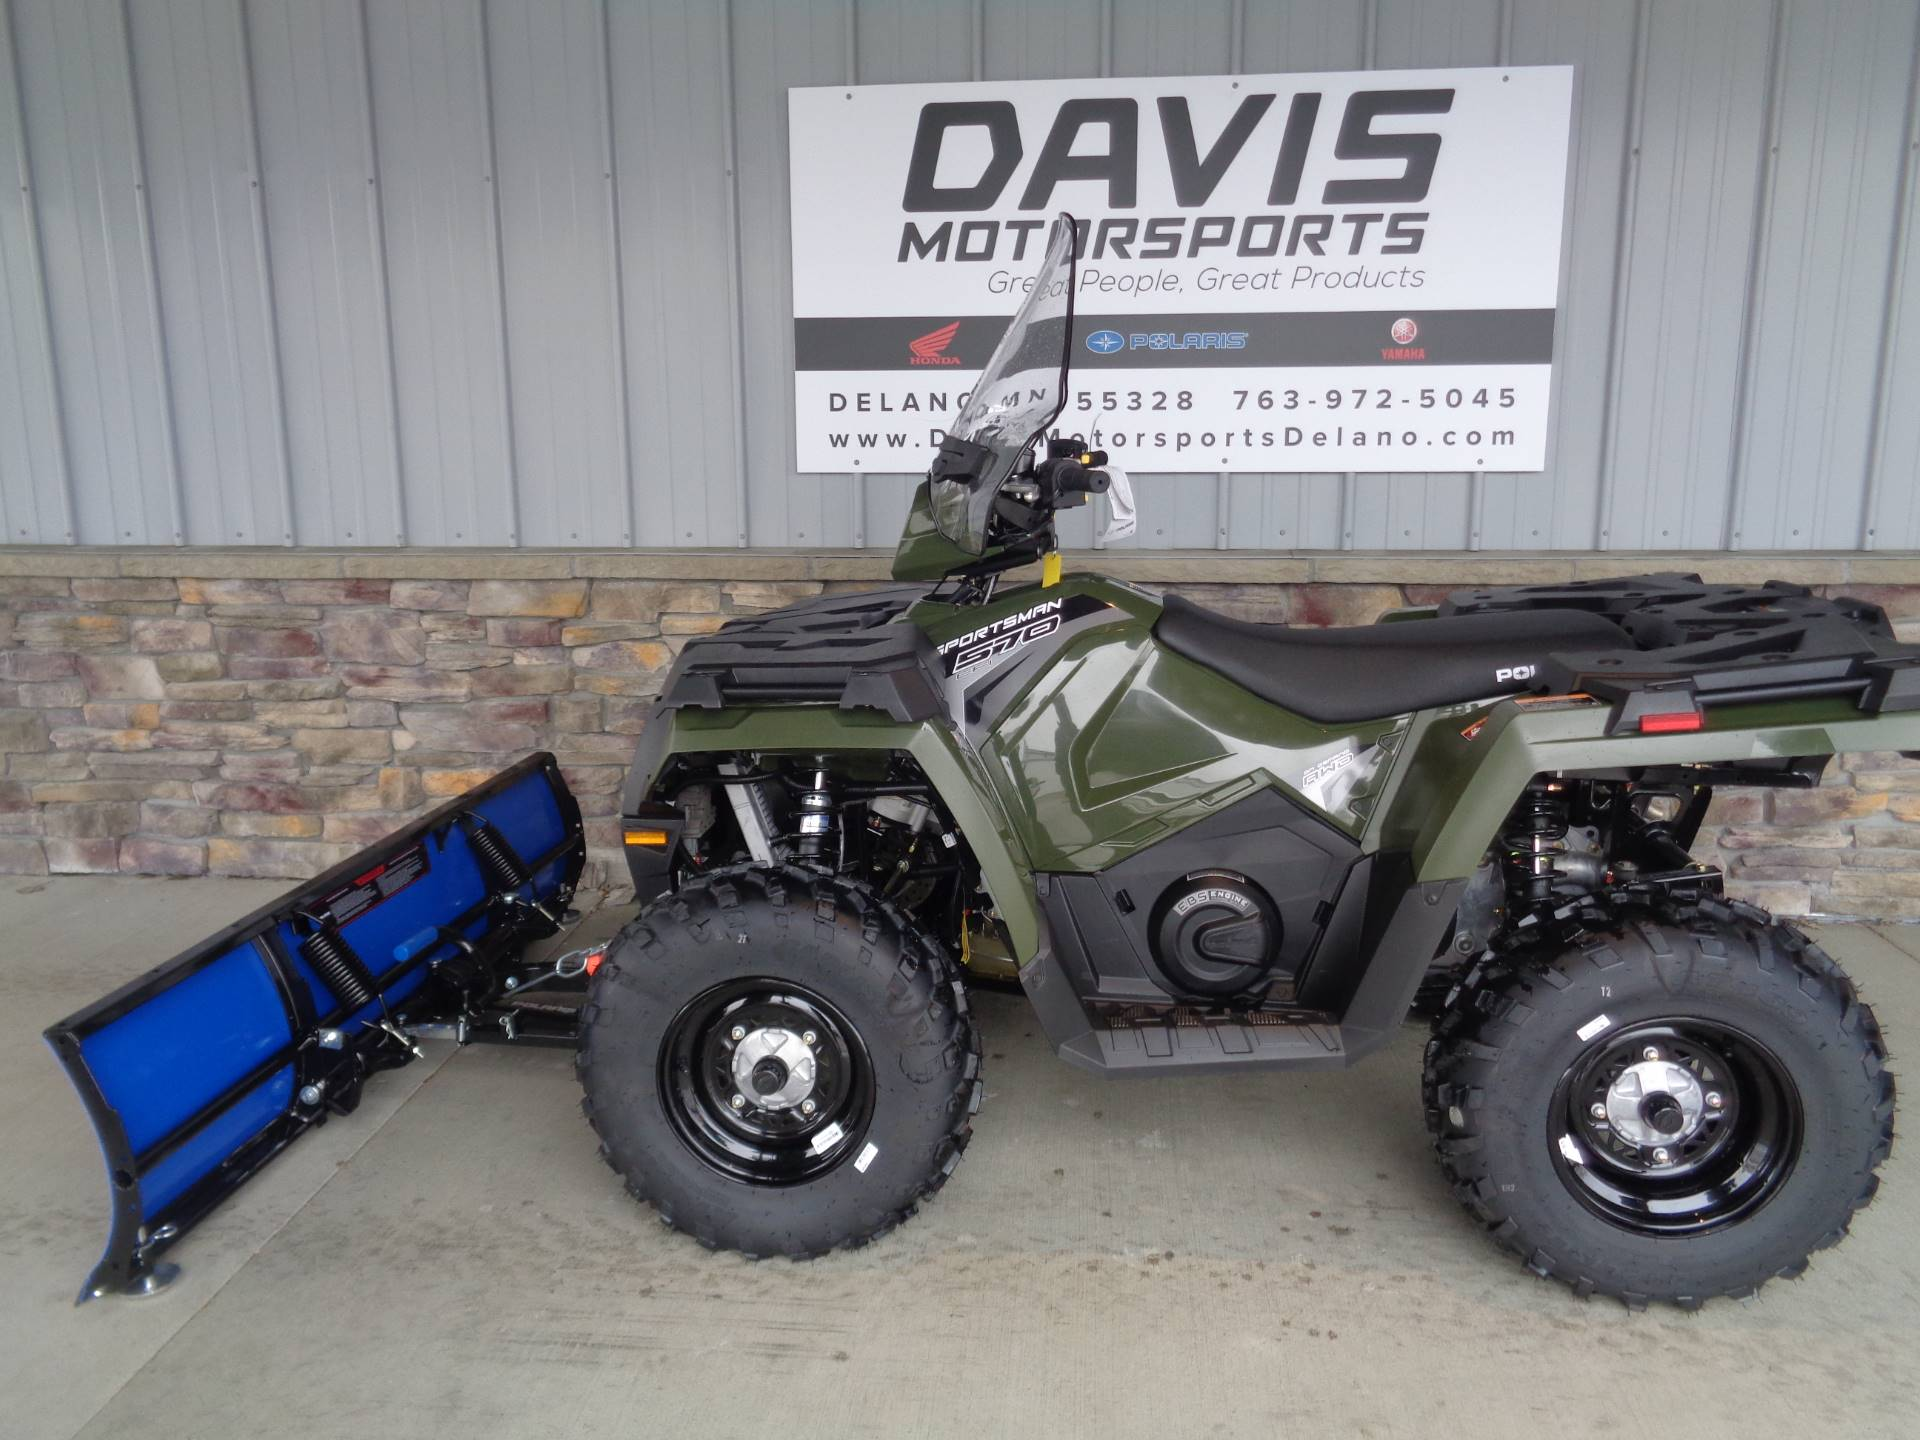 2019 Polaris Sportsman 570 EPS in Delano, Minnesota - Photo 2